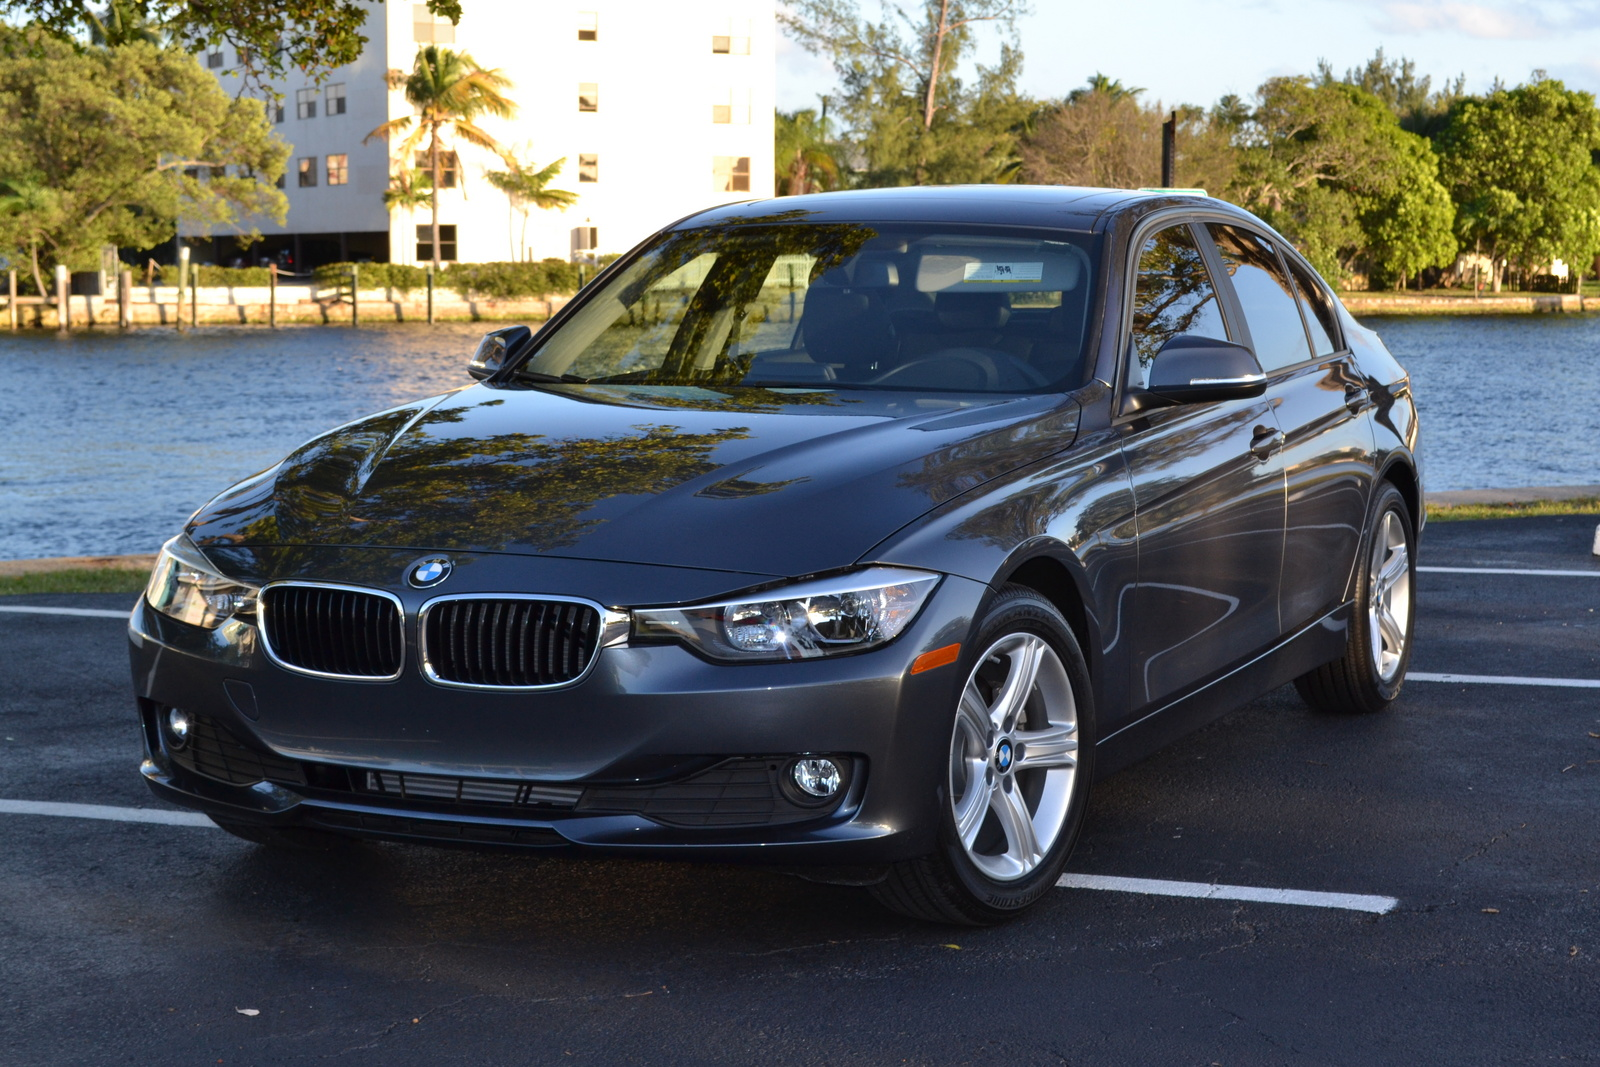 BMW 3 series 320i 2014 photo - 10